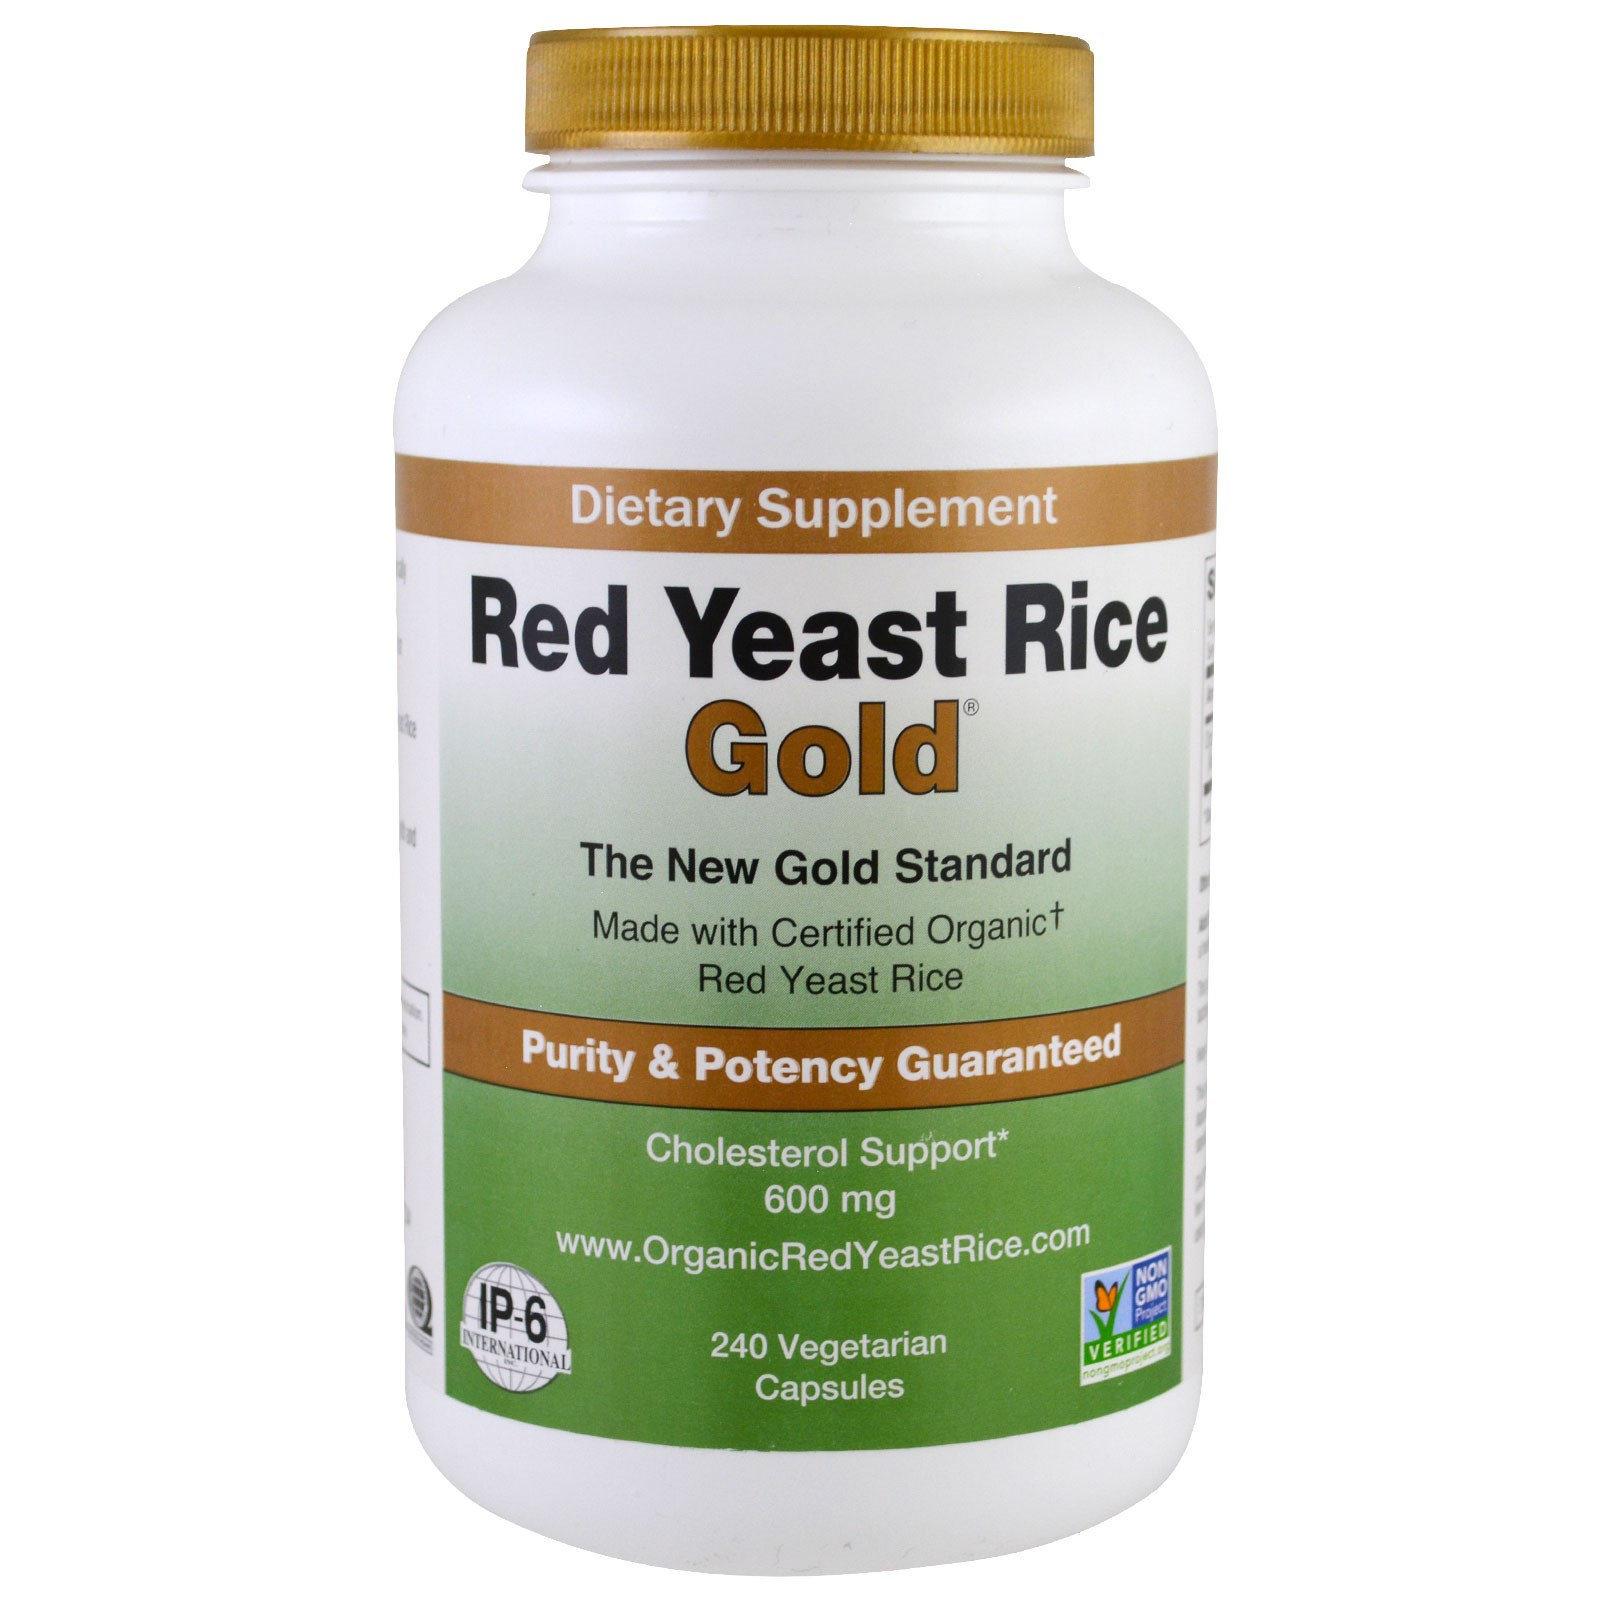 Red yeast rice supplement side effects